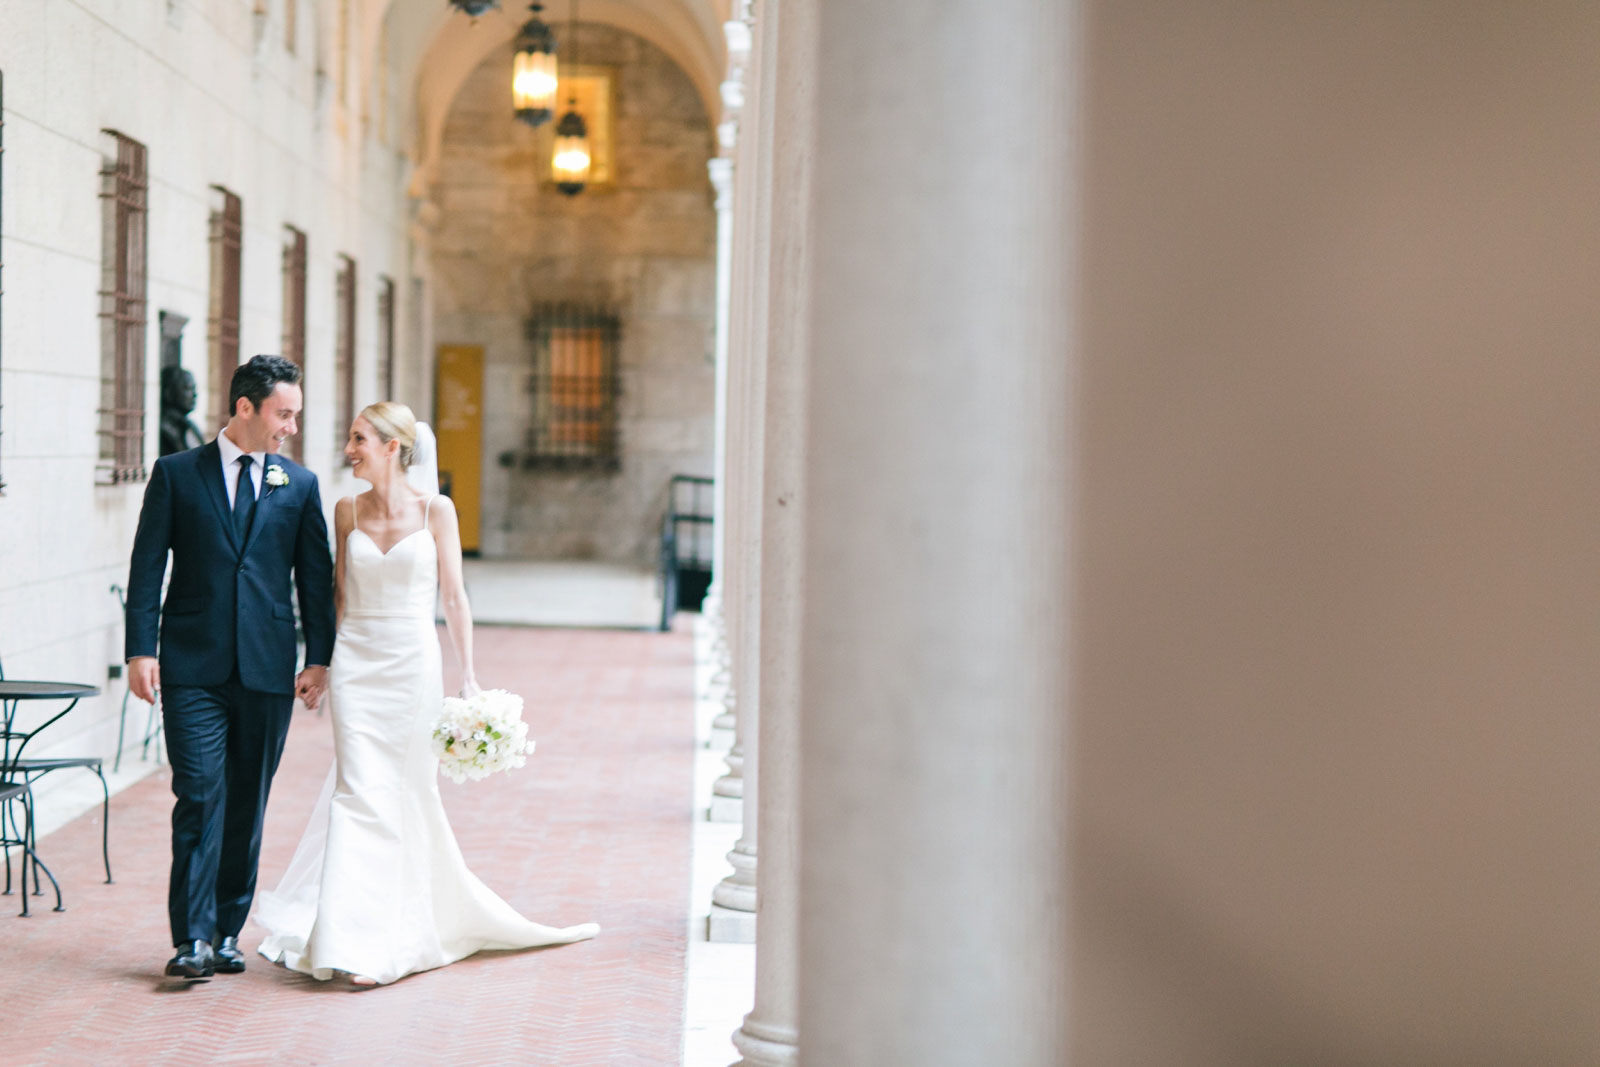 wedding portraits walking around courtyard of Boston public library with stone architecture